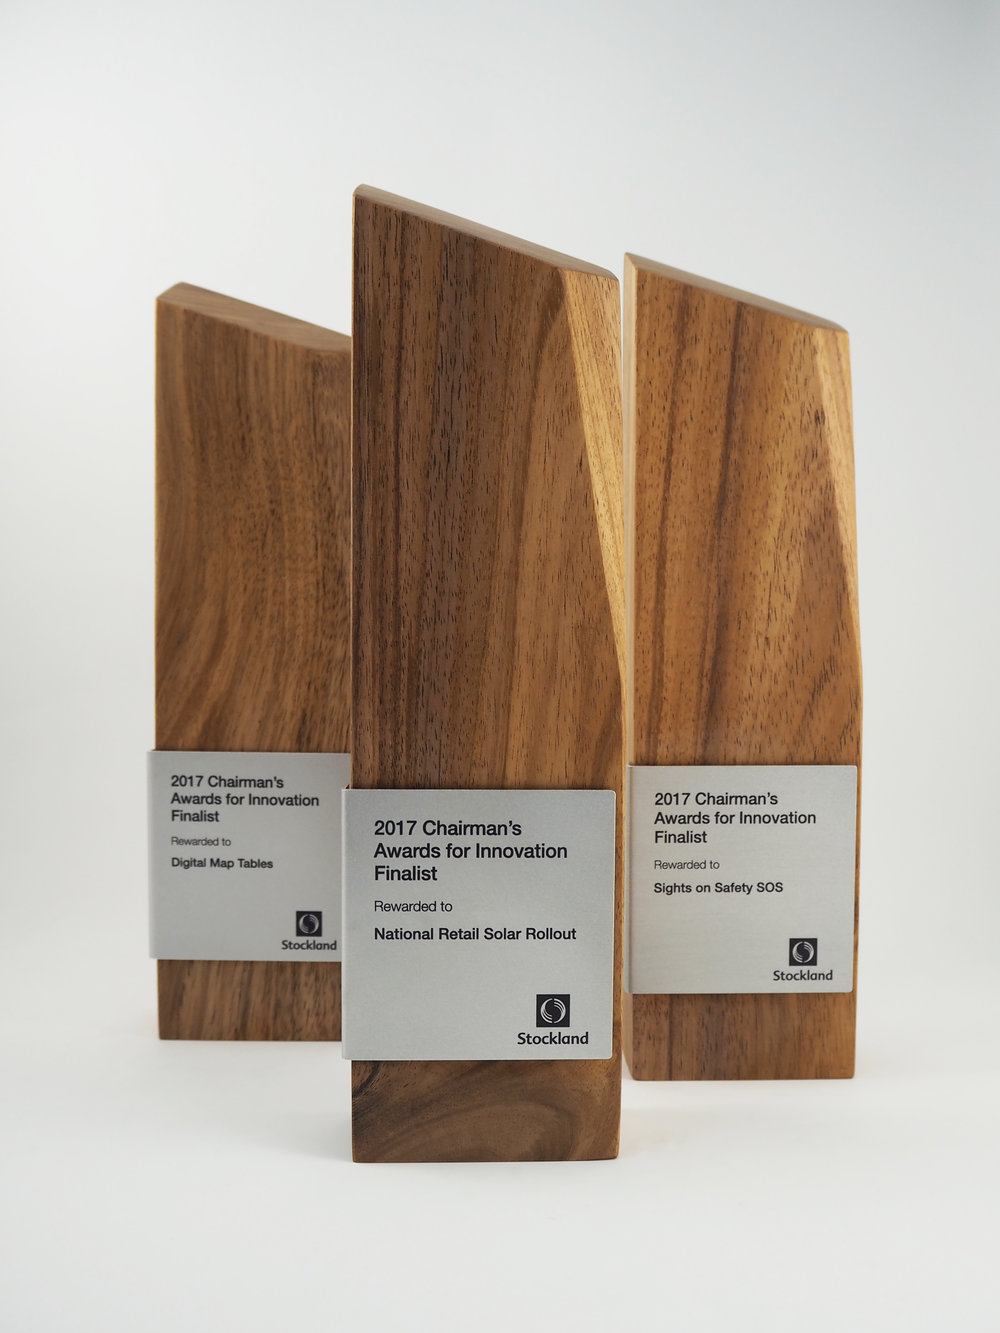 Stockland-Chairmans-timber-eco-trophy-awards-01.jpg